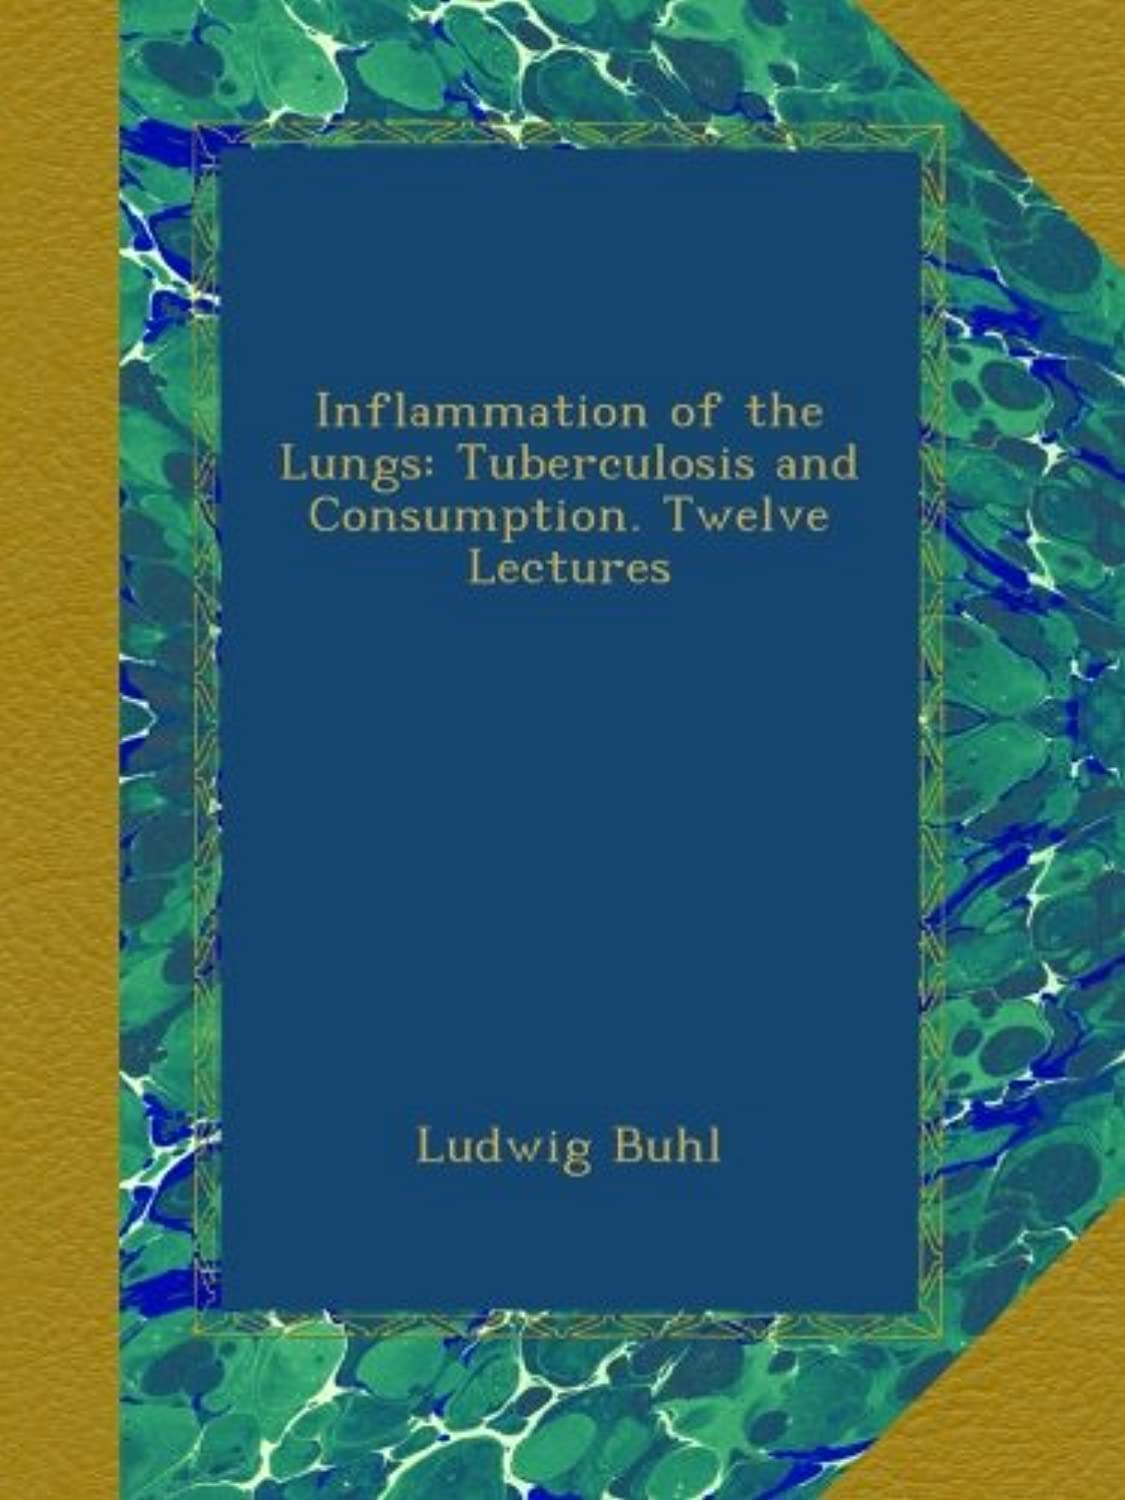 Inflammation of the Lungs: Tuberculosis and Consumption. Twelve Lectures